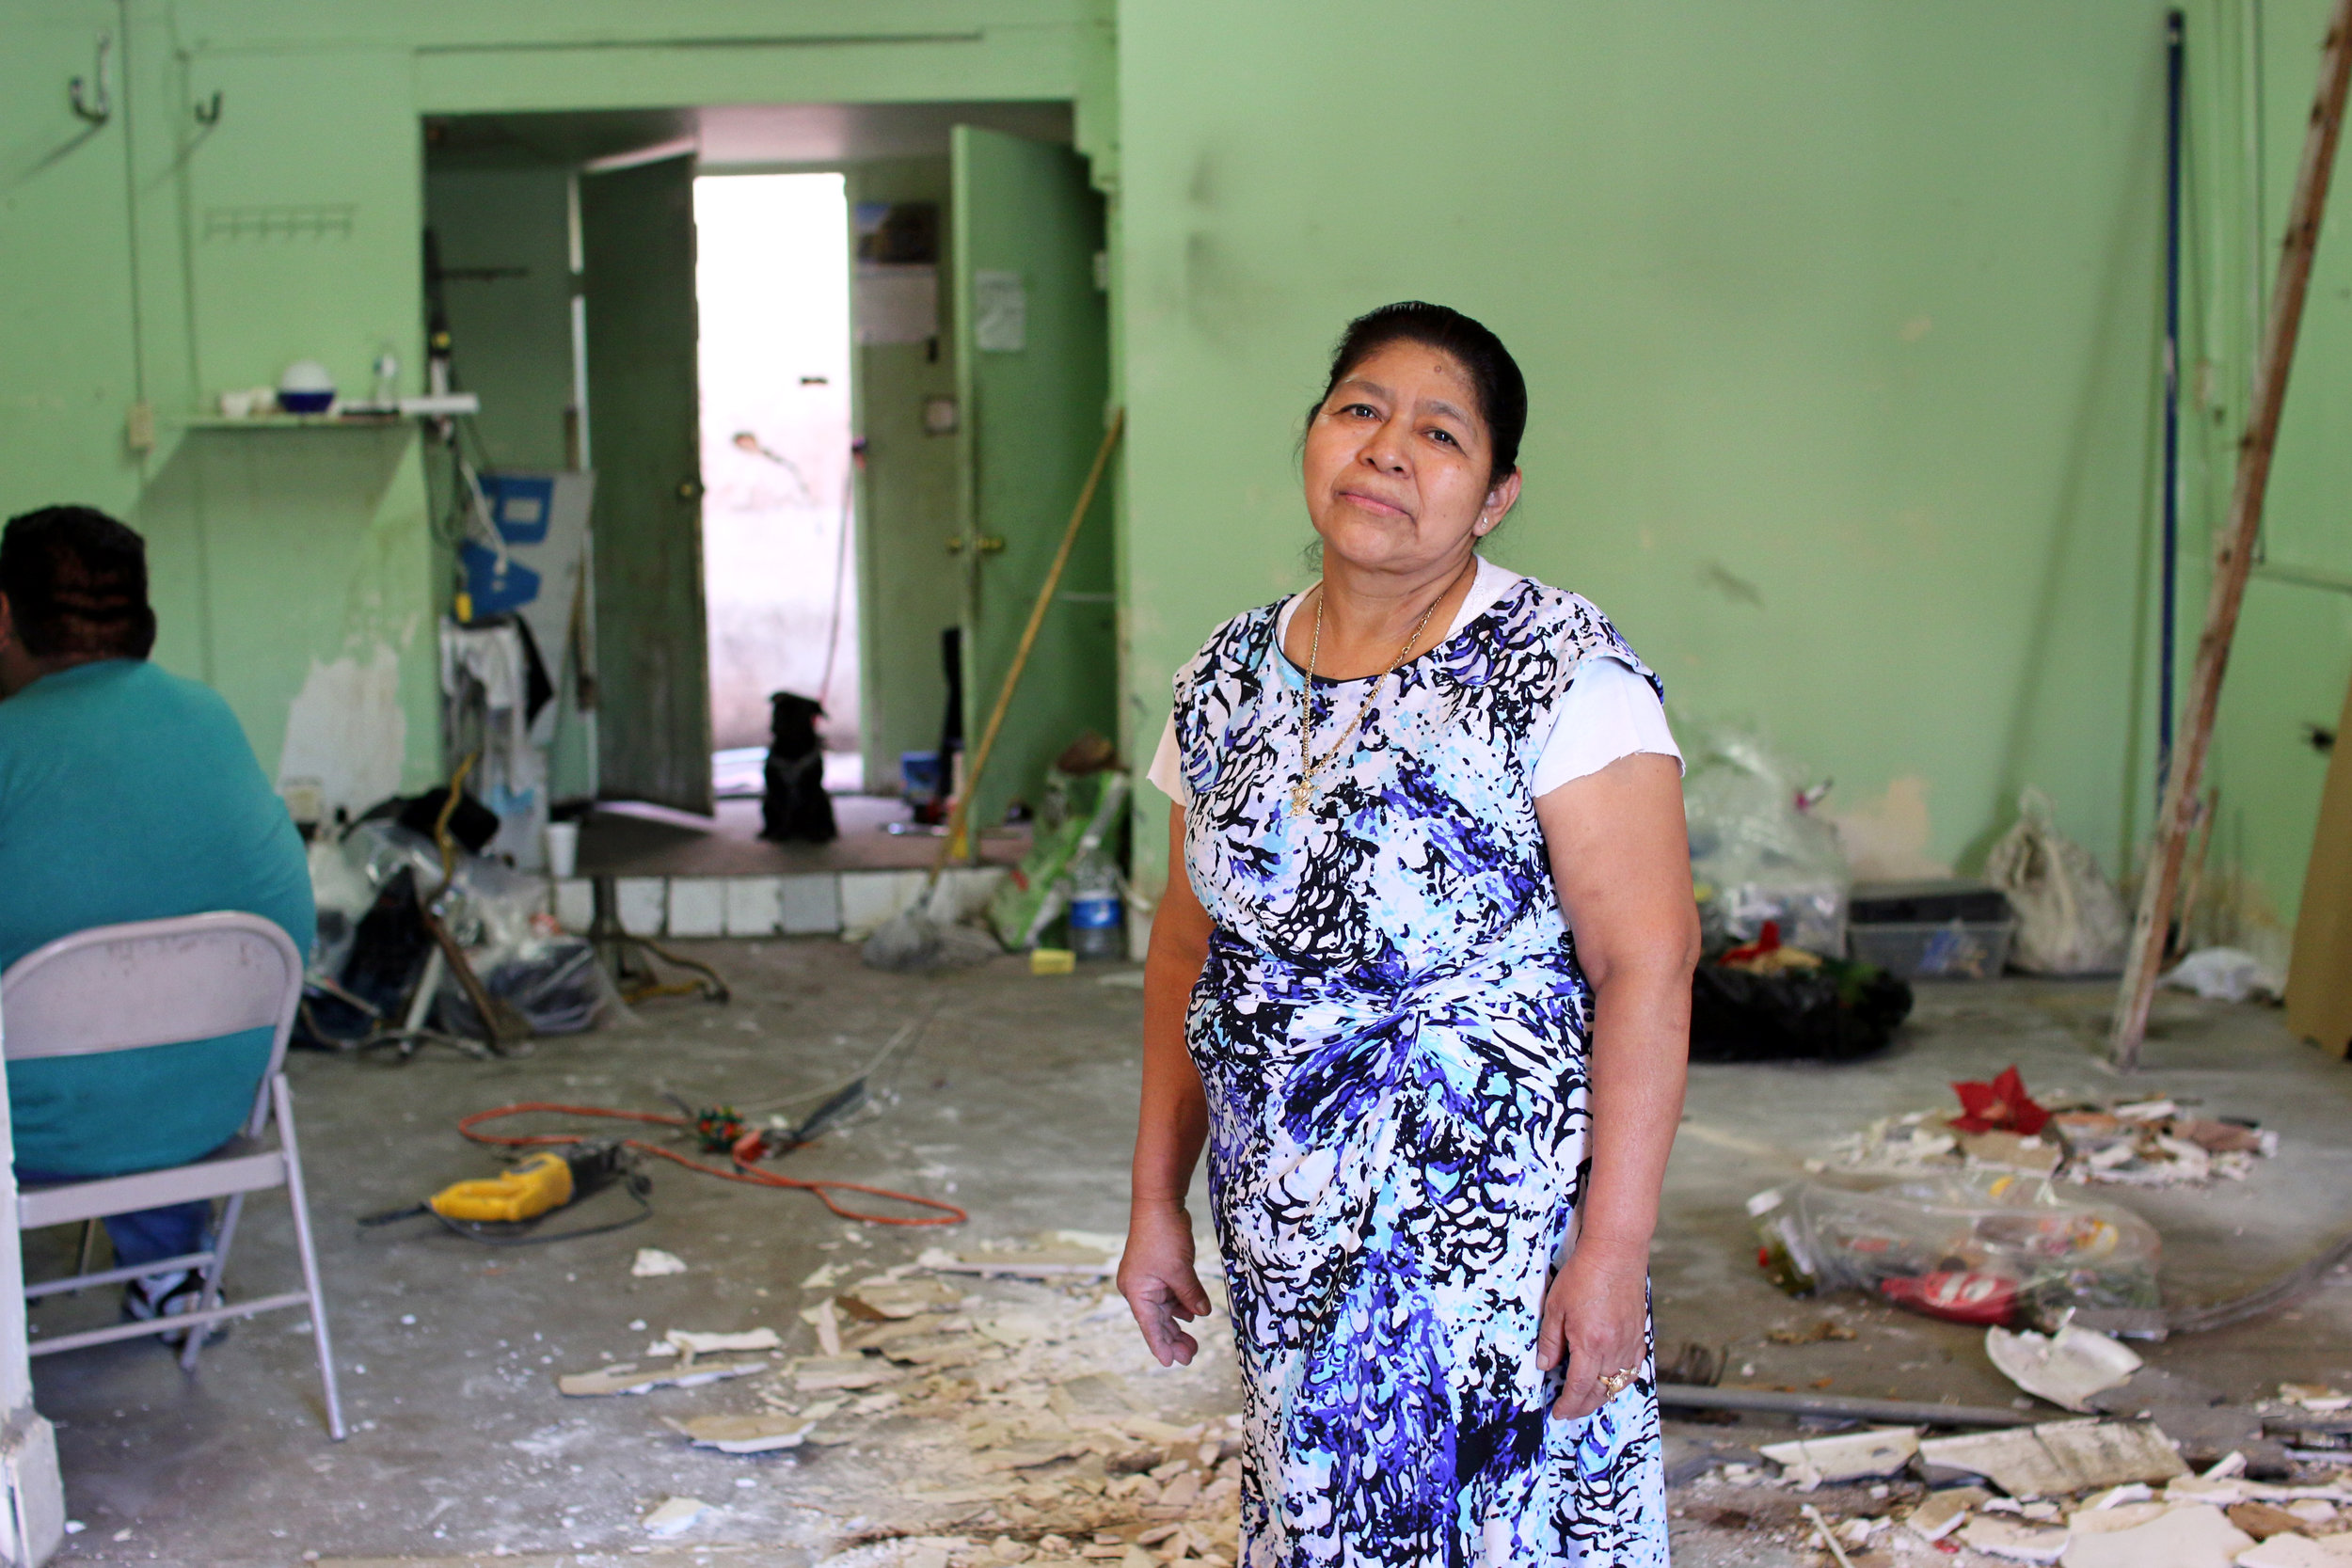 "A new owner bought the building where Super Pan Bakery once stood. In August of 2018, he gave the family 60 days to vacate the premises. Doña Elvia and her family packed up their belongings and emptied the bakery that served the community for almost 20 years. On October 18th of 2018, the day Super Pan officially closed its doors, regulars kept stopping hoping to buy their usual pan dulce, but Doña Elvia told them with great sadness that they were closed. ""I'm leaving with great sadness. I resign myself. It had to end one day. I thank God first because it's been twenty years, twenty years that we've been here. My children and my grandchildren grew up in this place. I want to thank all my neighbors, the whole community here who always supported me and they have come to say goodbye to me."""